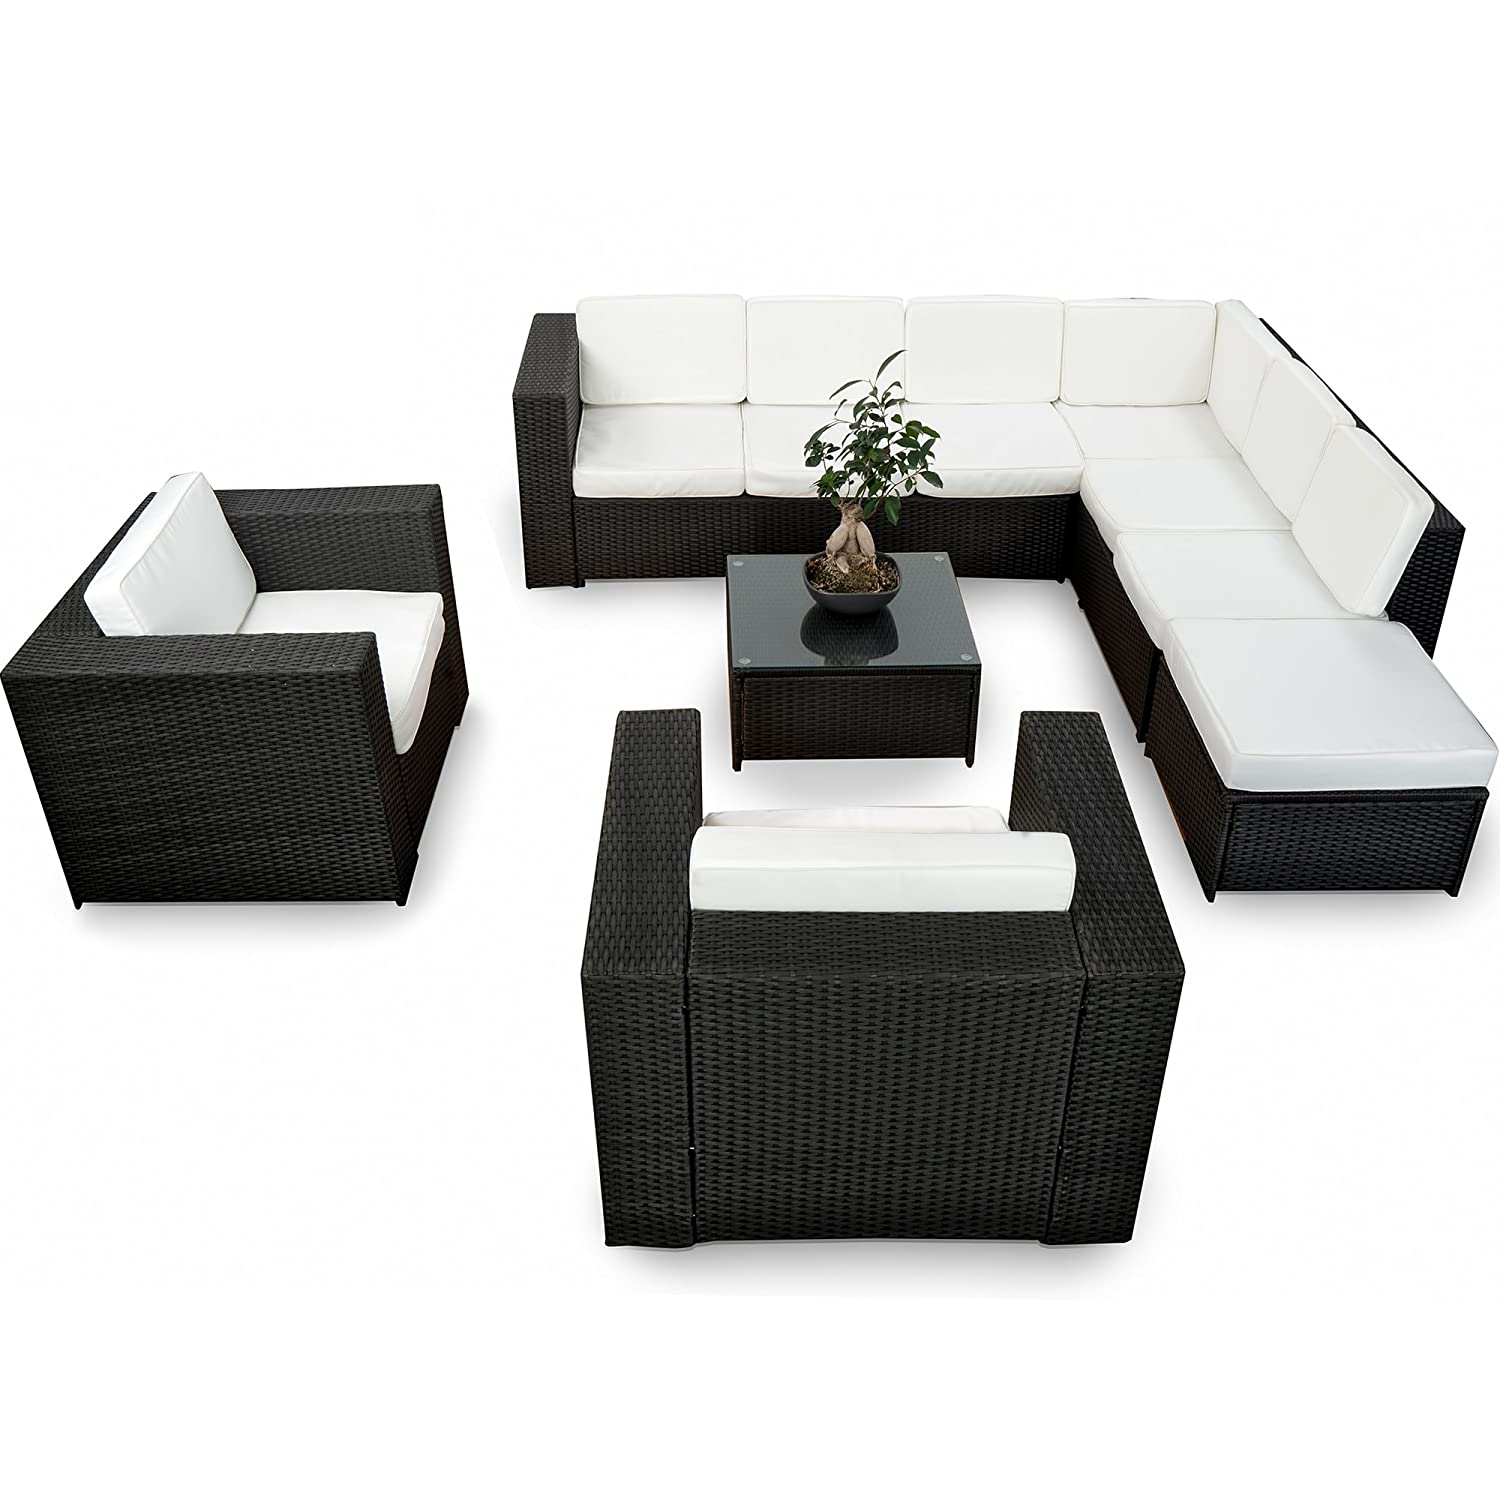 garten loungem bel g nstig. Black Bedroom Furniture Sets. Home Design Ideas